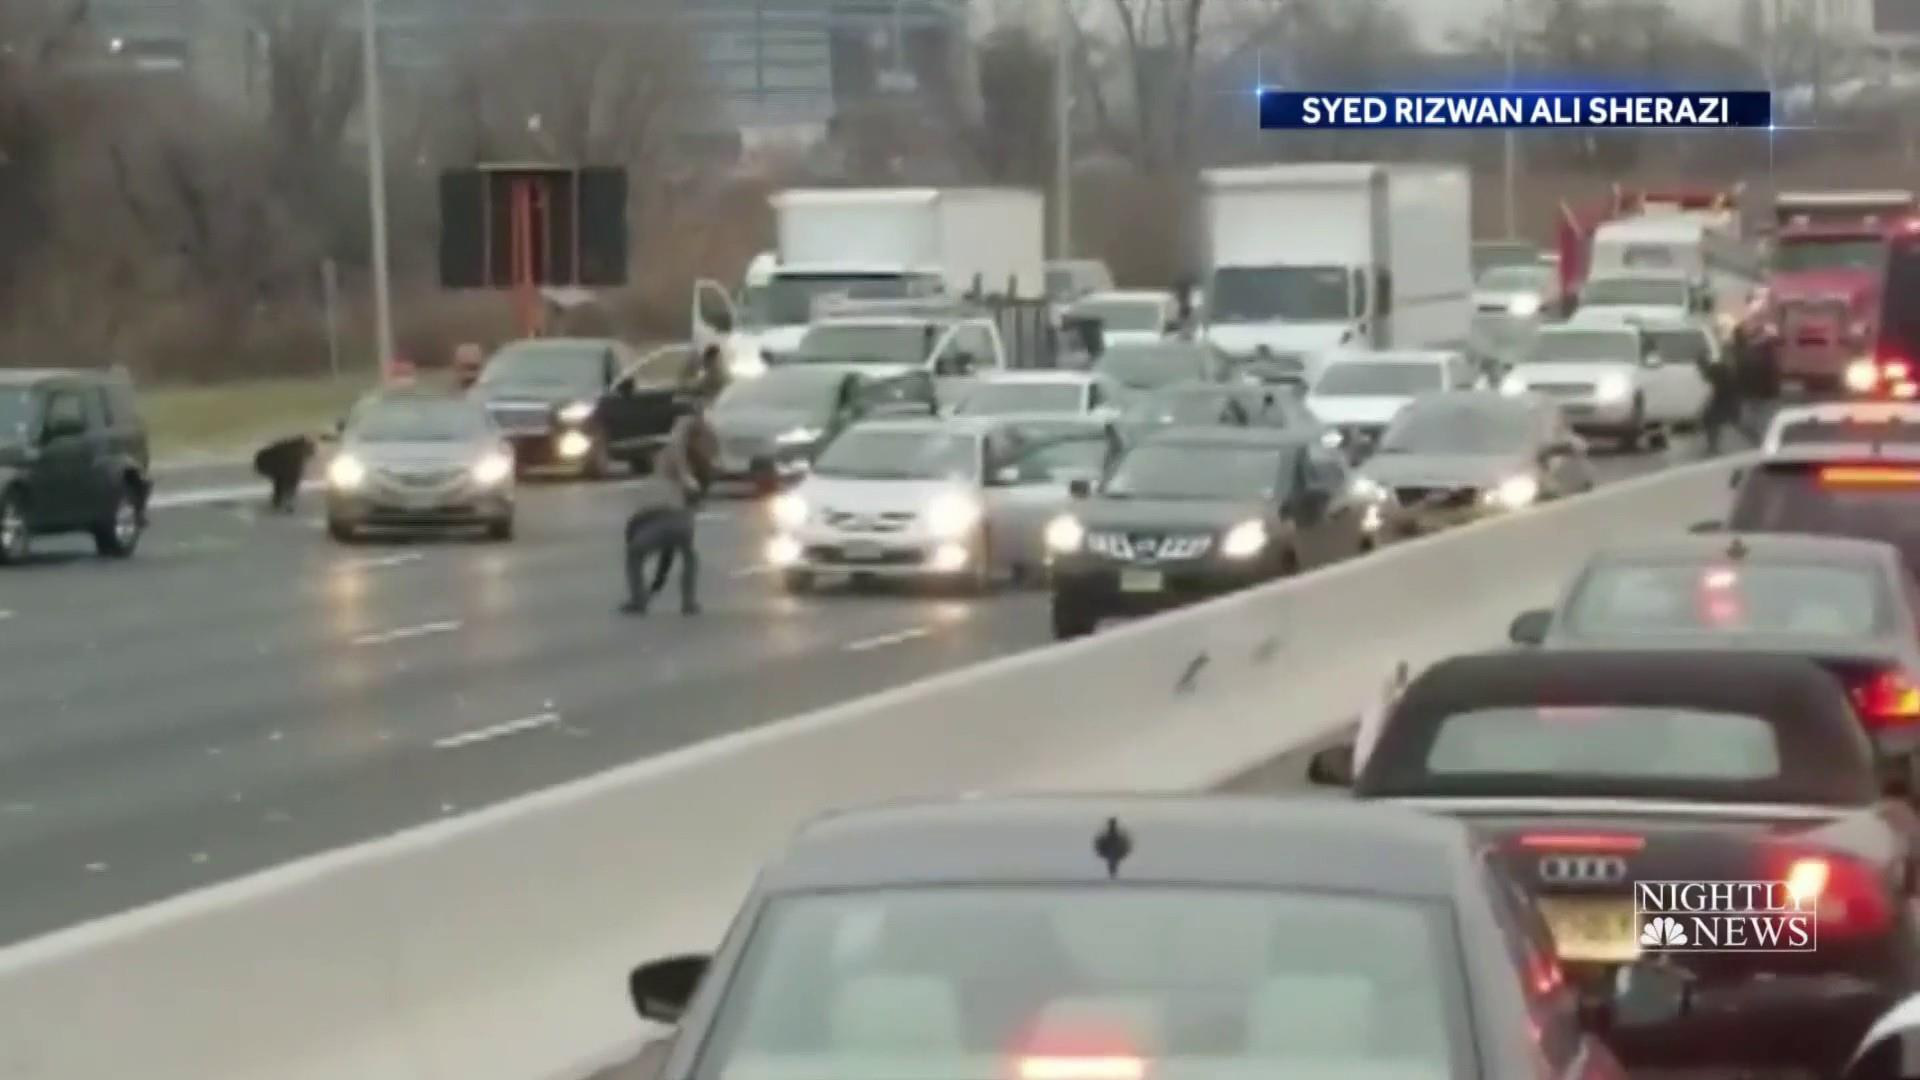 Nearly $300,000 still missing from armored truck in N.J. highway mishap